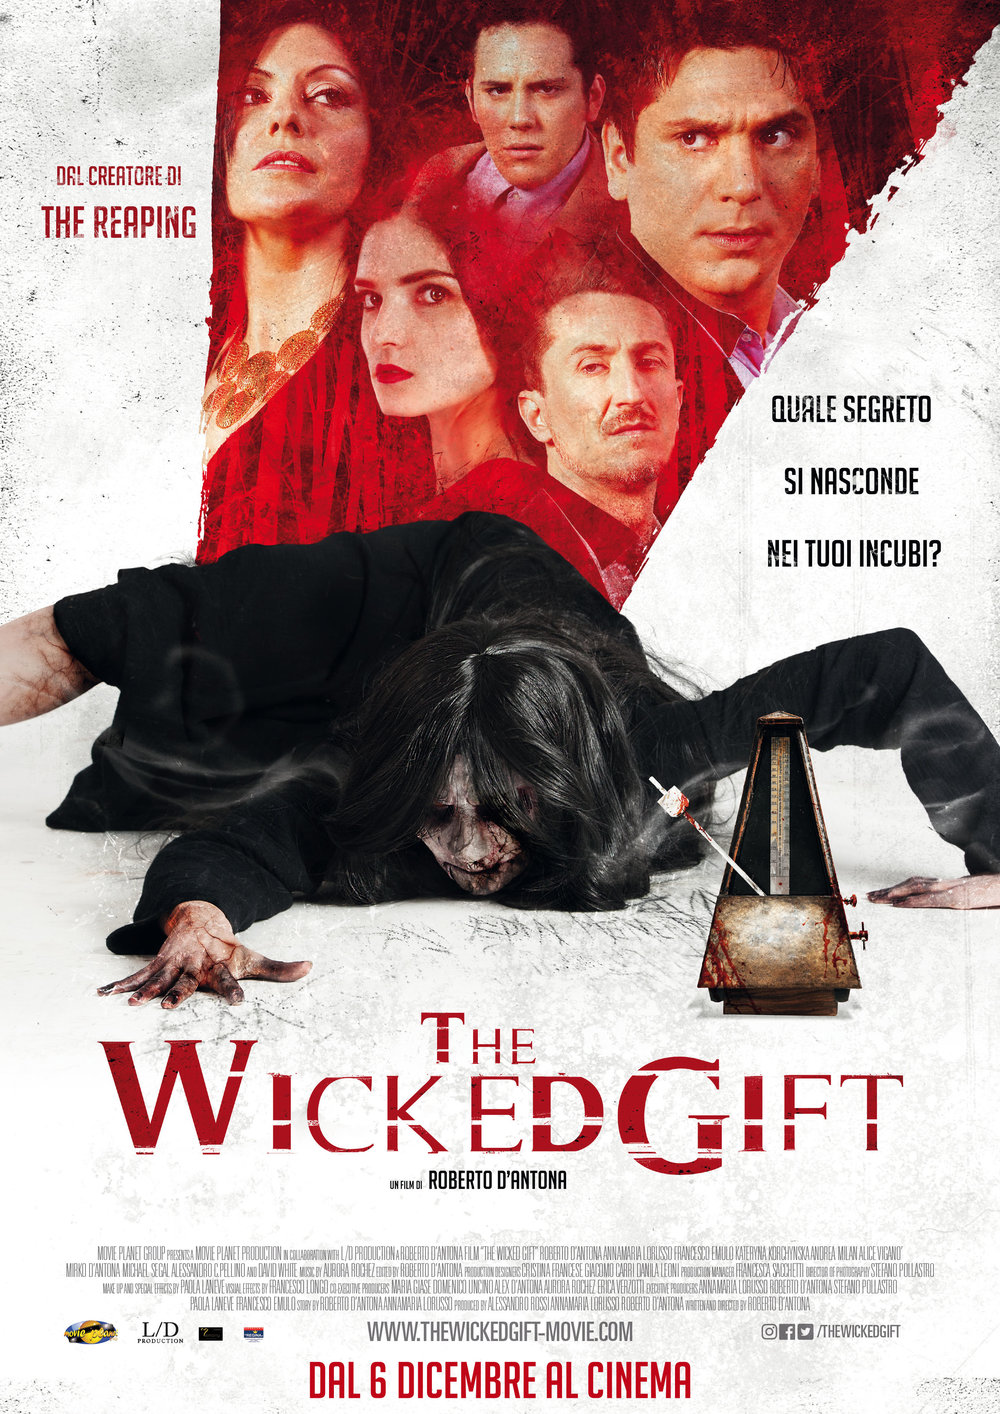 THE WICKED GIFT -